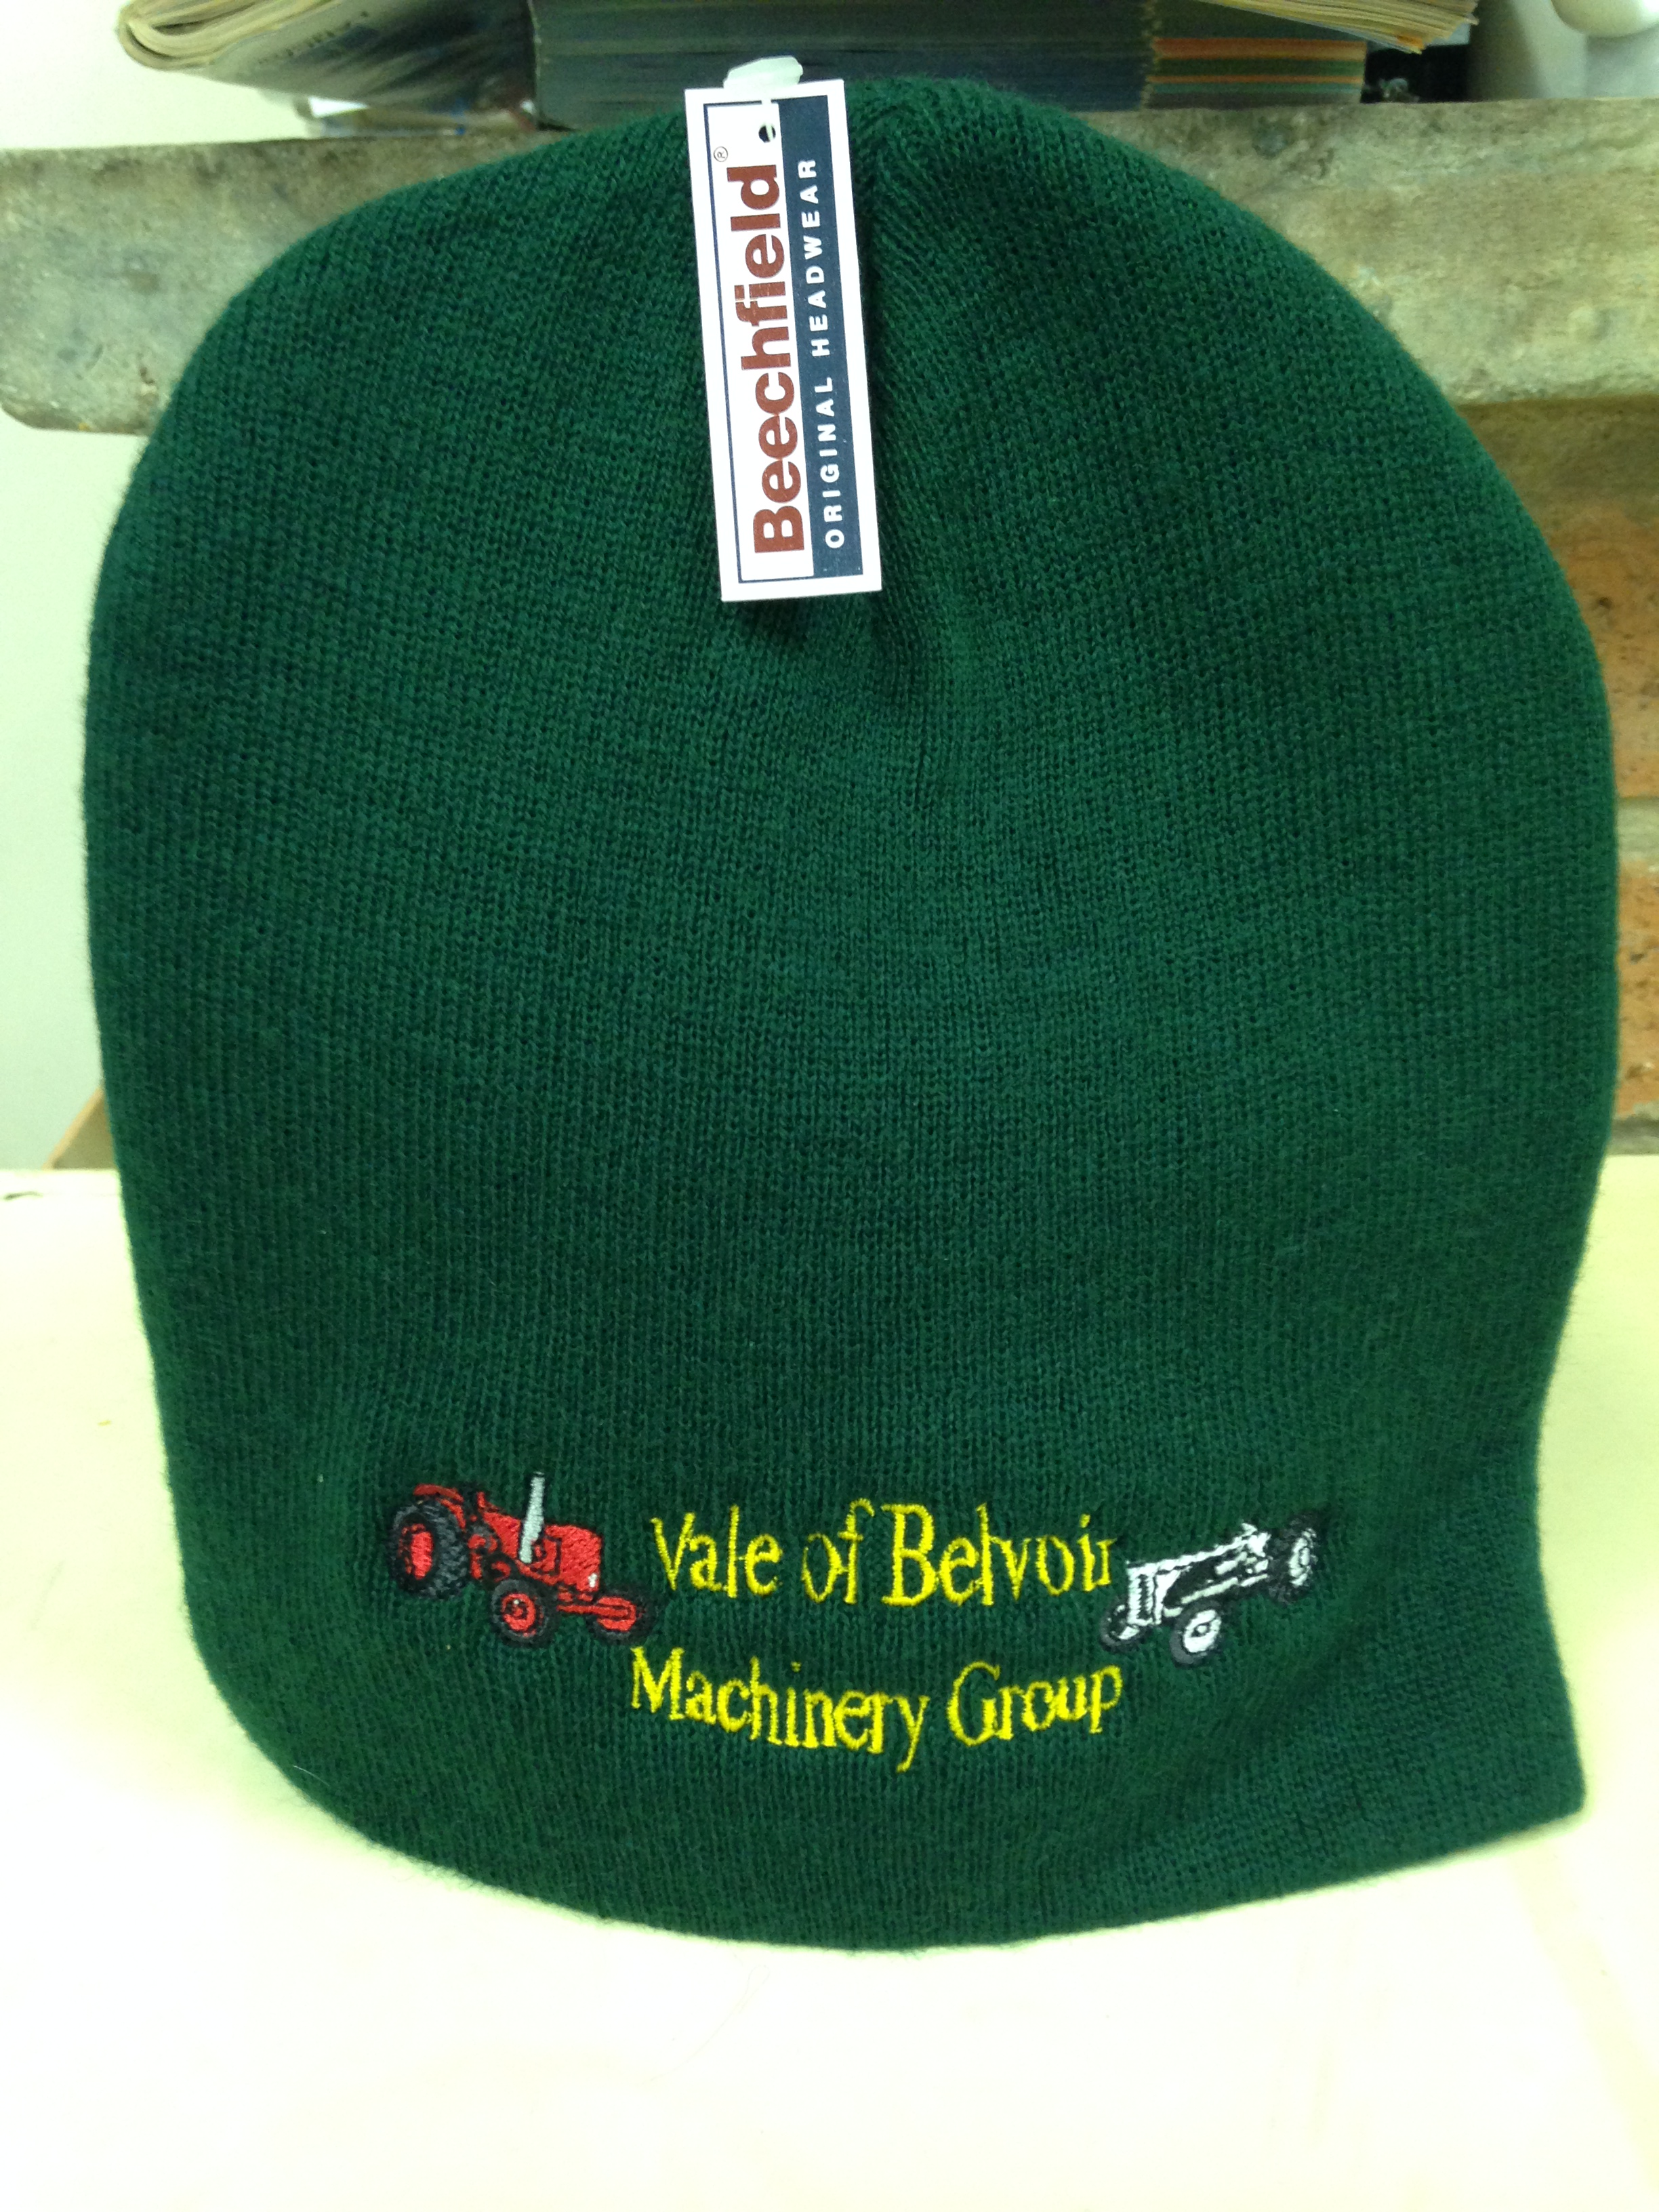 Club Branded Beanie Hats - Avaialble in a variety of colours, One size fits all, Priced at £5.50